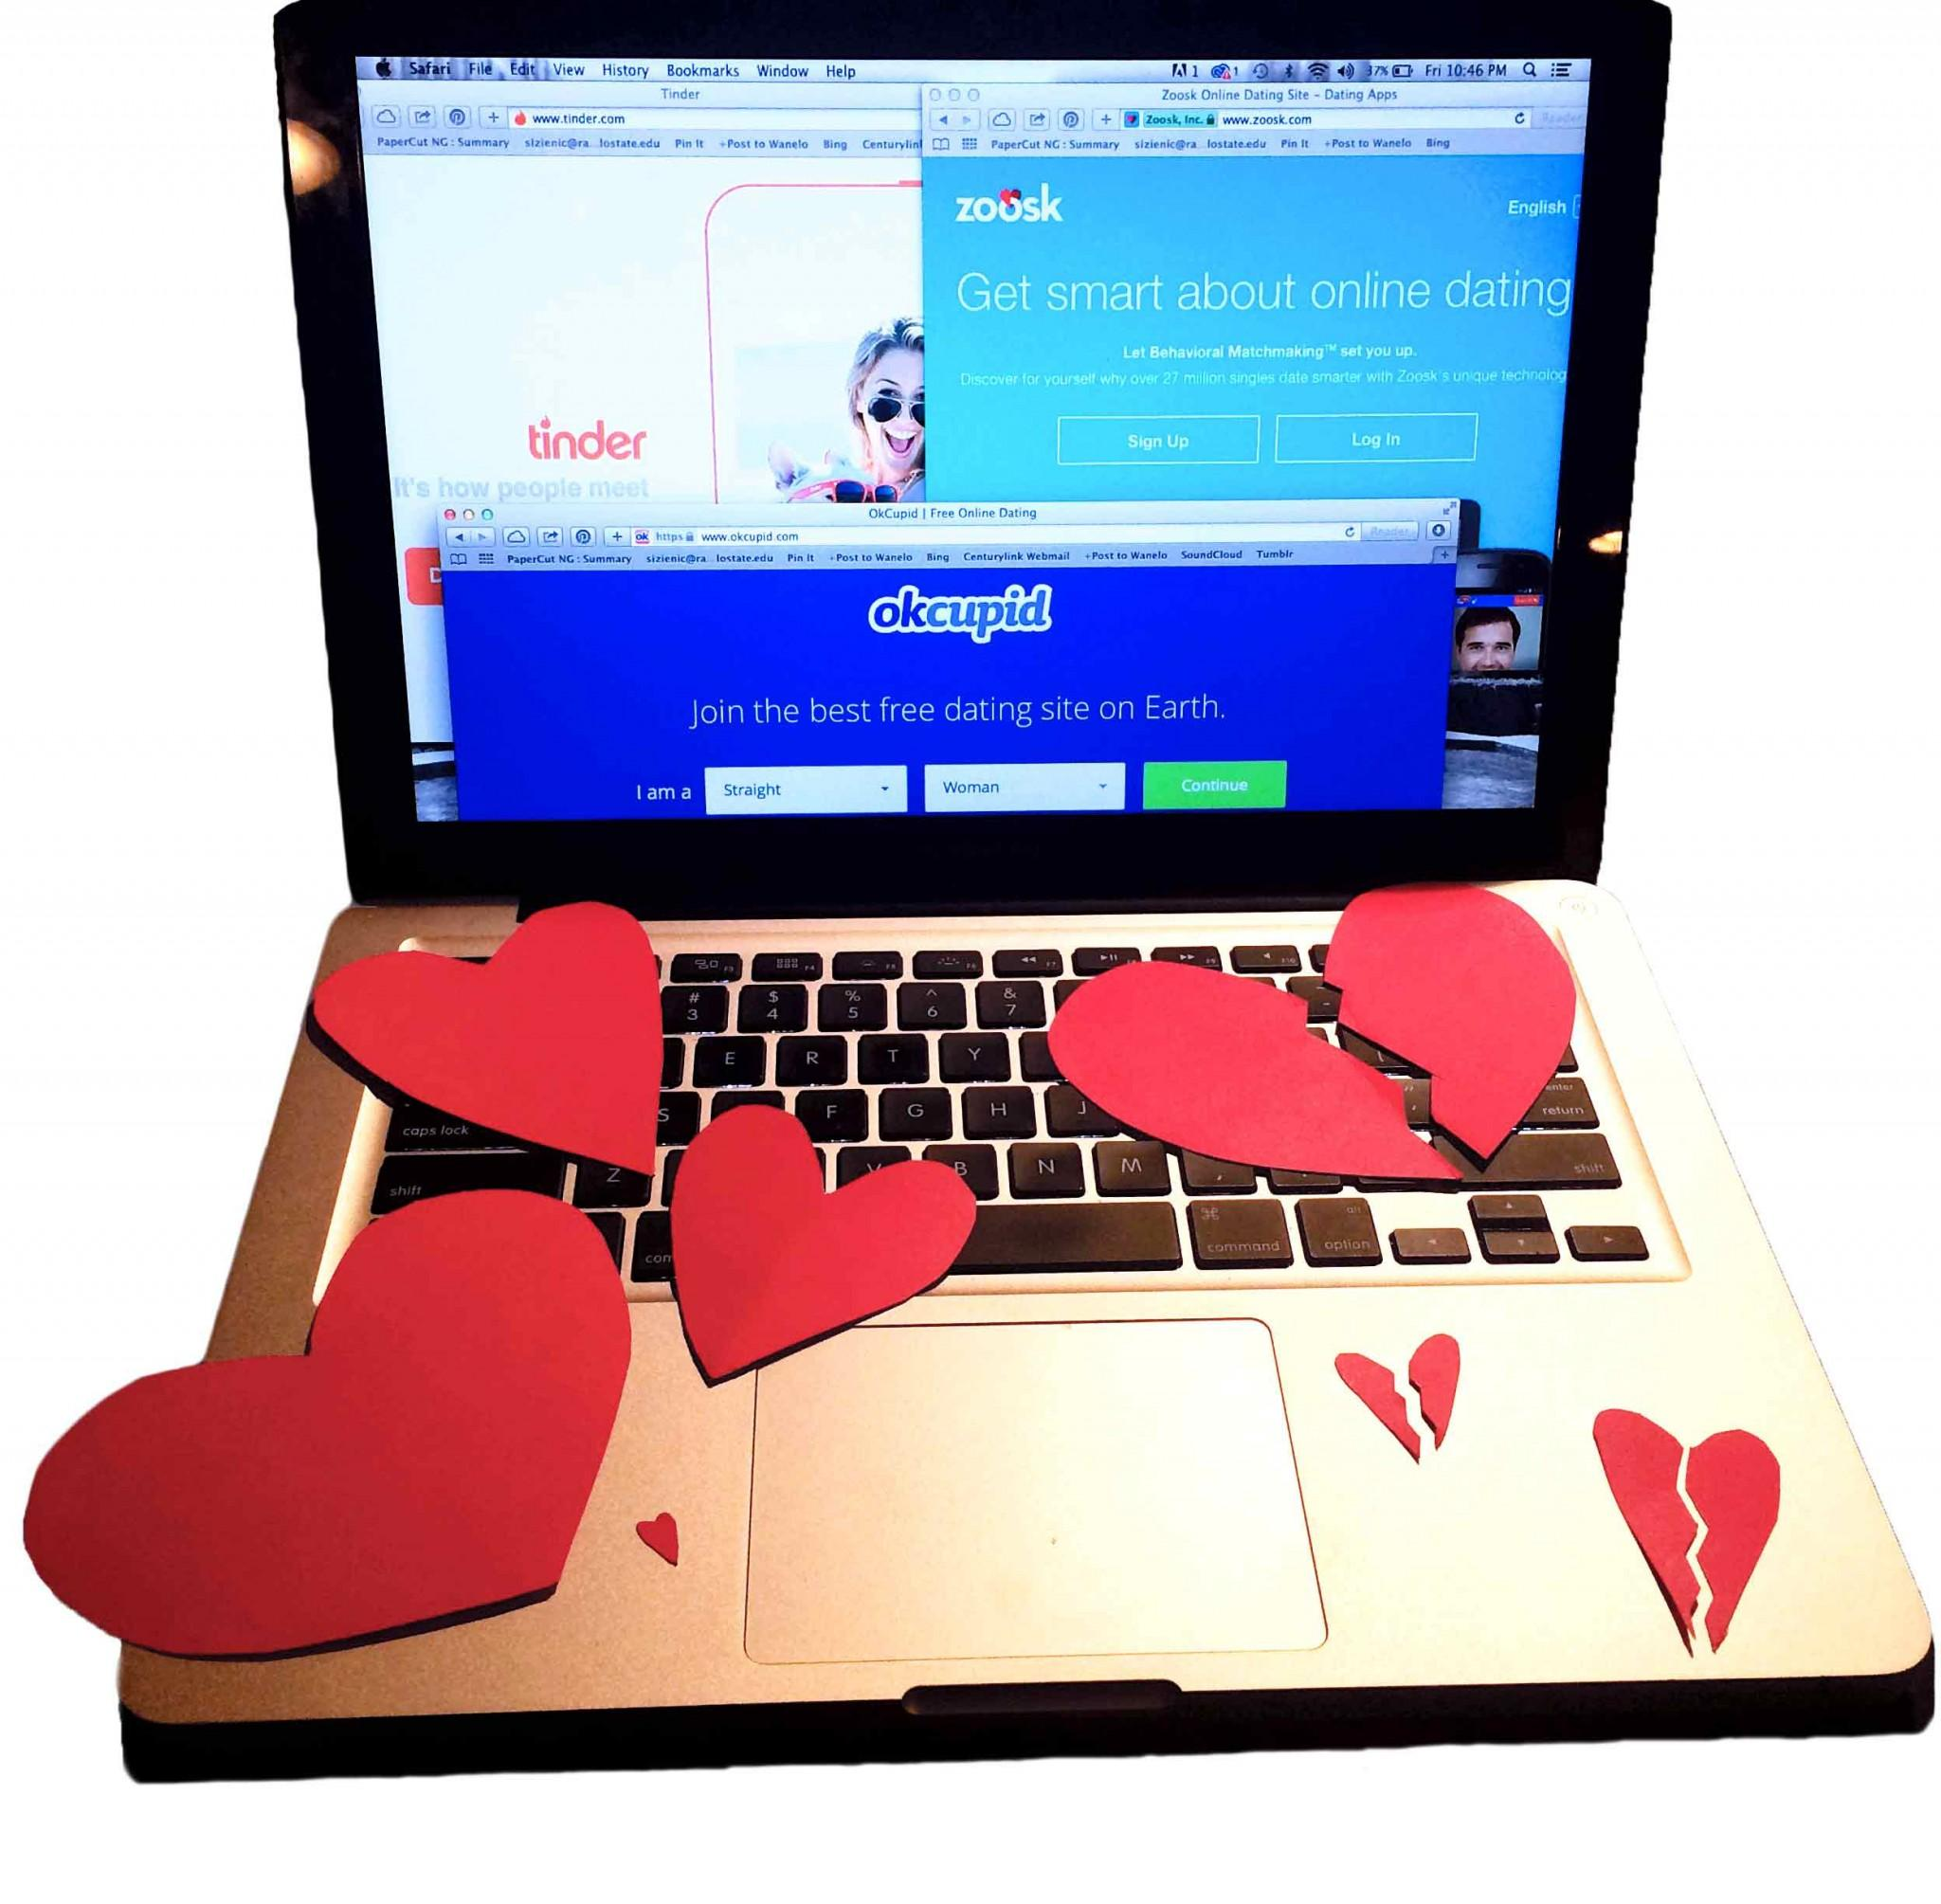 psychology today pros and cons of online dating Online dating - pros and cons diploma in clinical and community psychology, ma today, most online dating websites and apps have filters through which you.